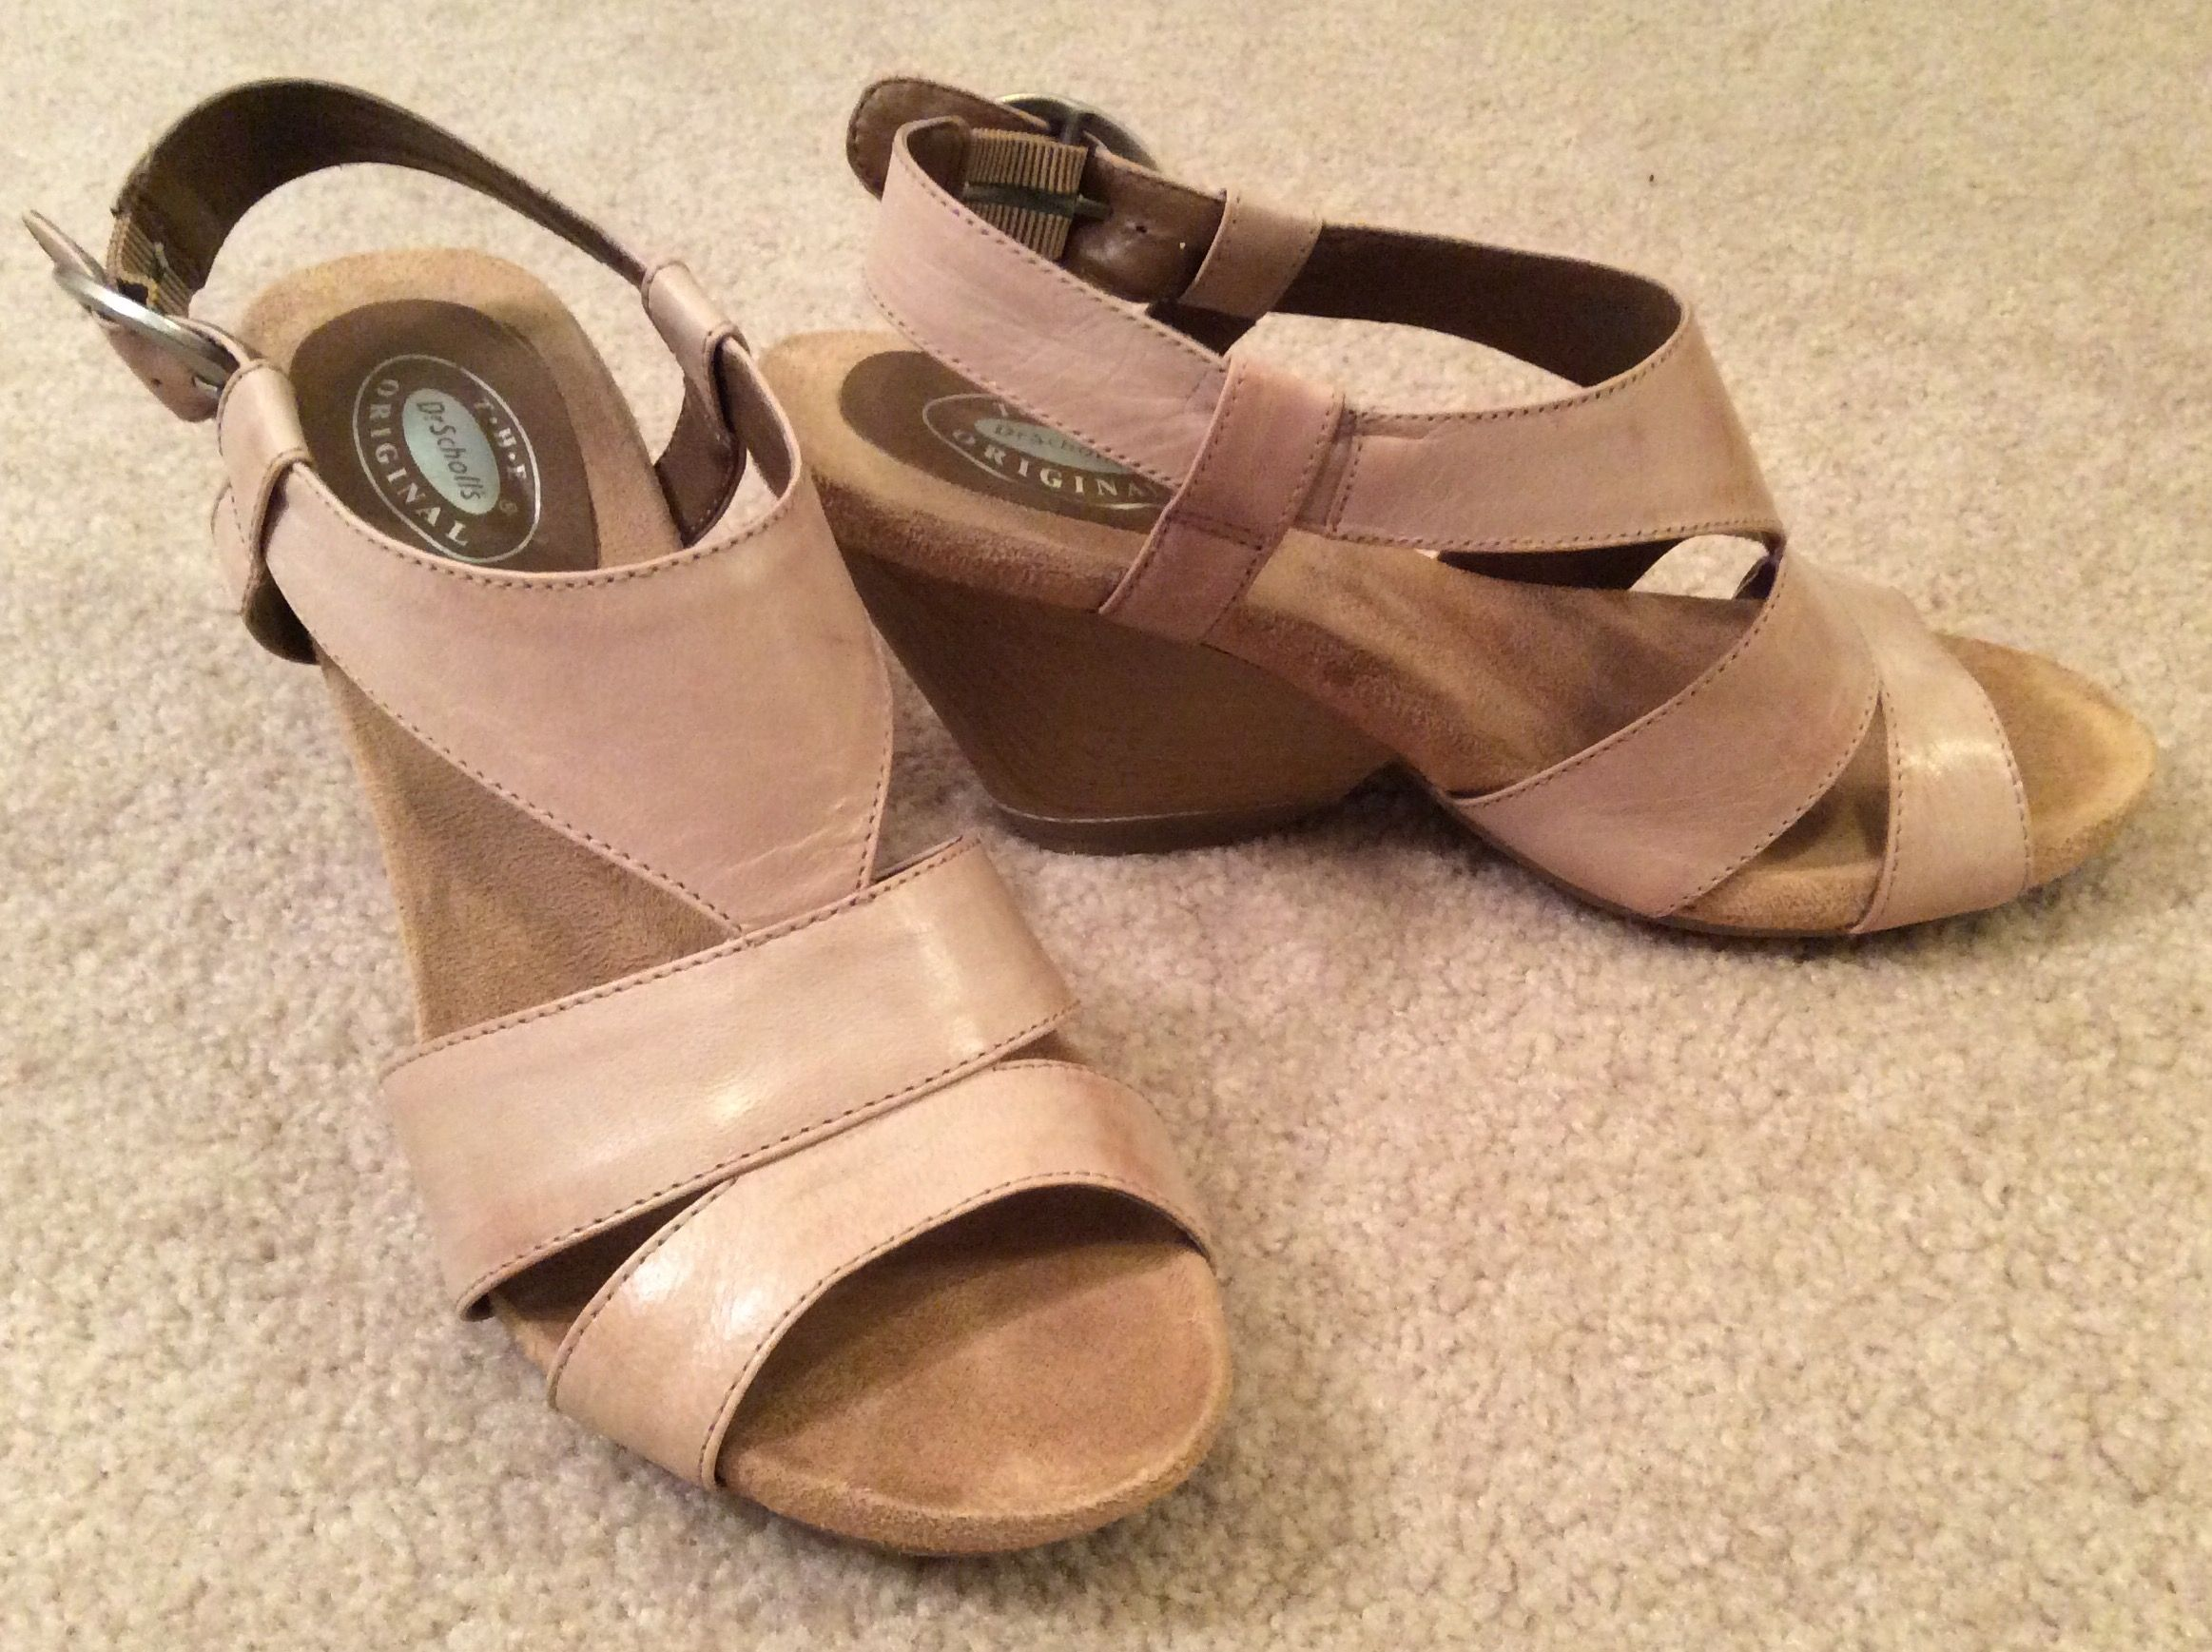 Steve Madden wedge sandals in Nude, sz 8. Marshall's?